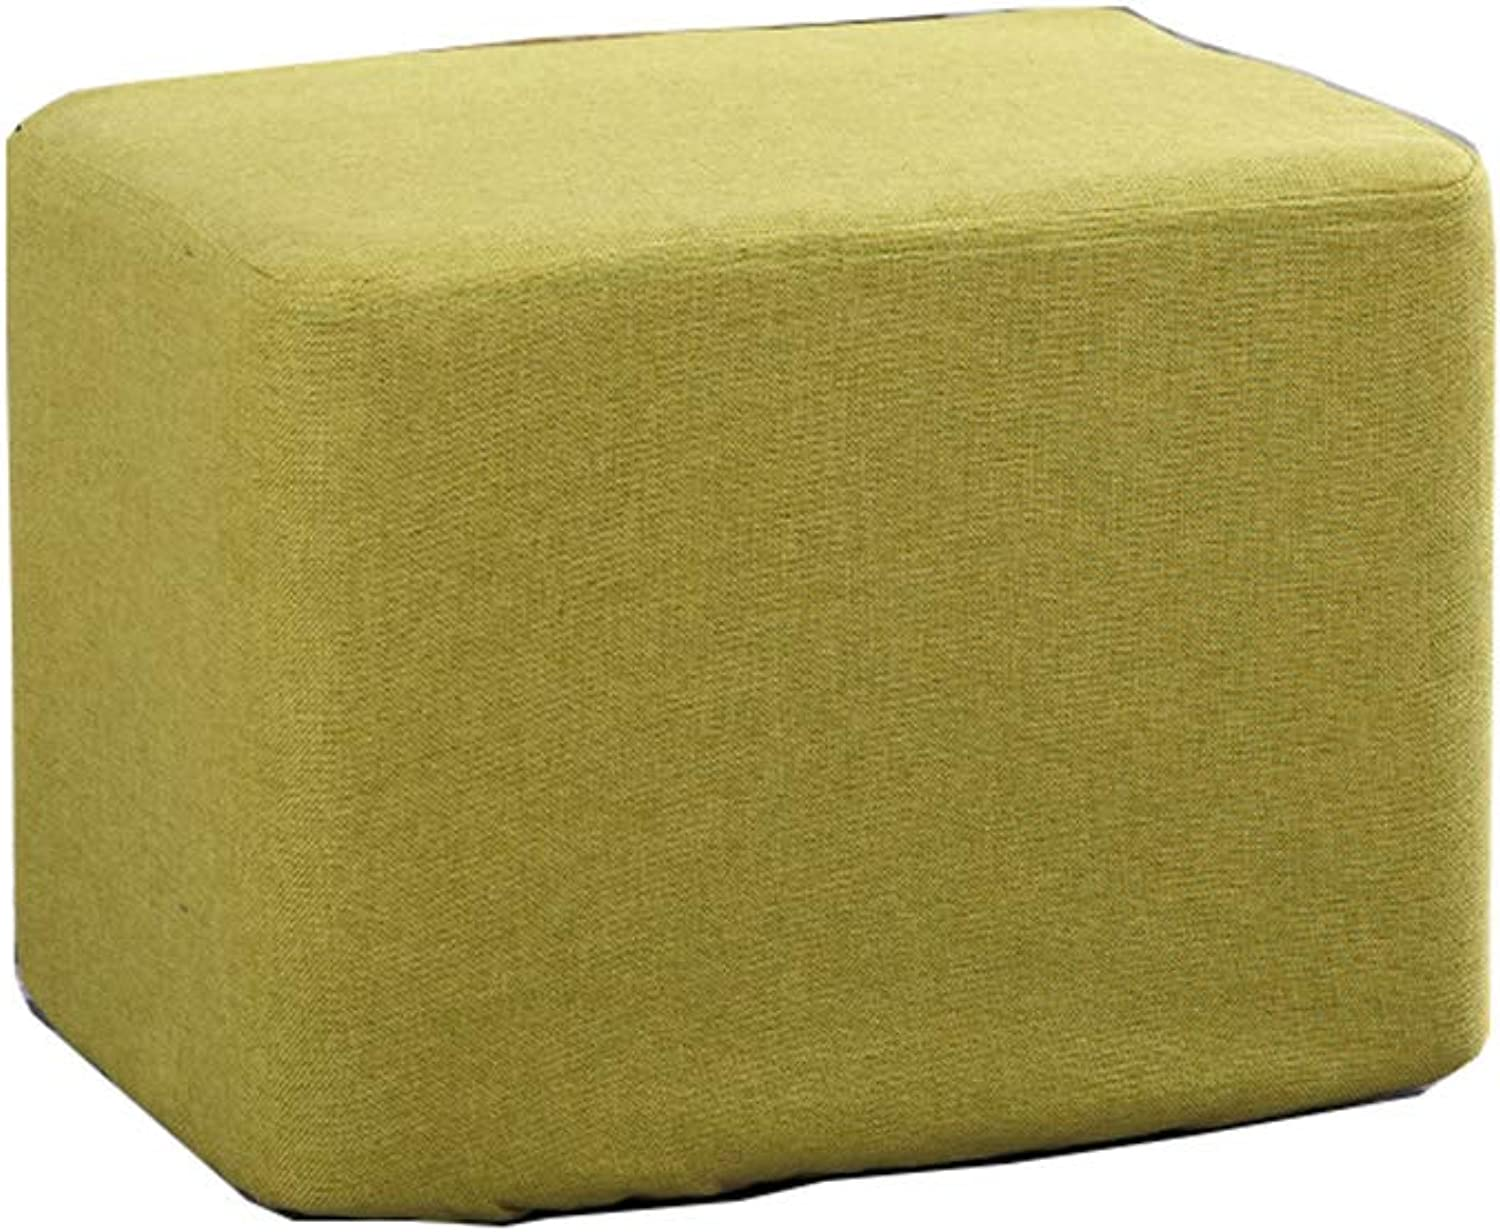 Solid Wood Sofa Bench Change shoes Bench Bedroom Cloth Bed End Stool Osman Fashion Makeup Stool Stool (Green) (Size    1)